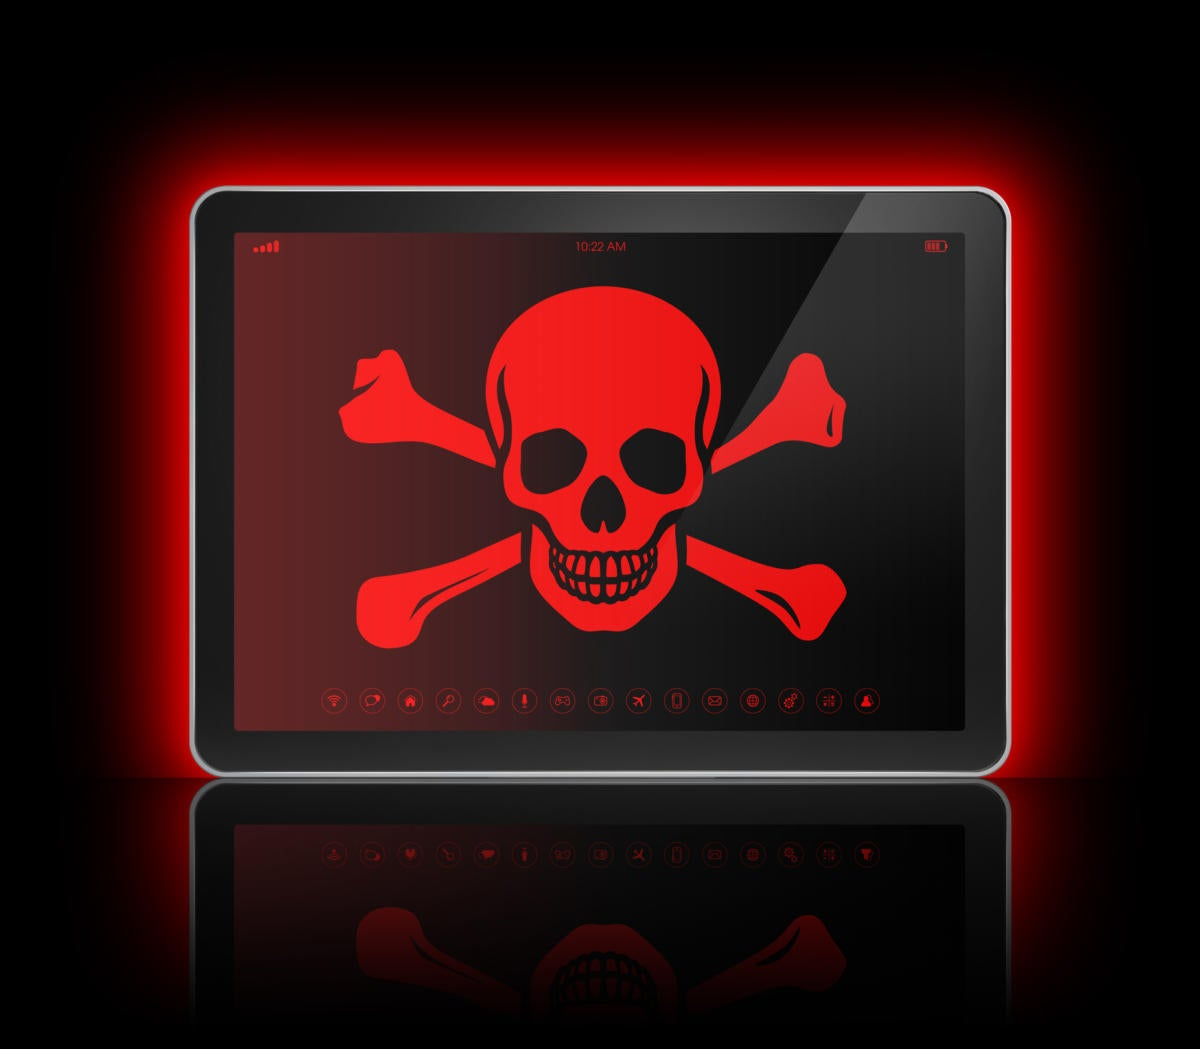 tablet with skull and crossbones cybersecurity